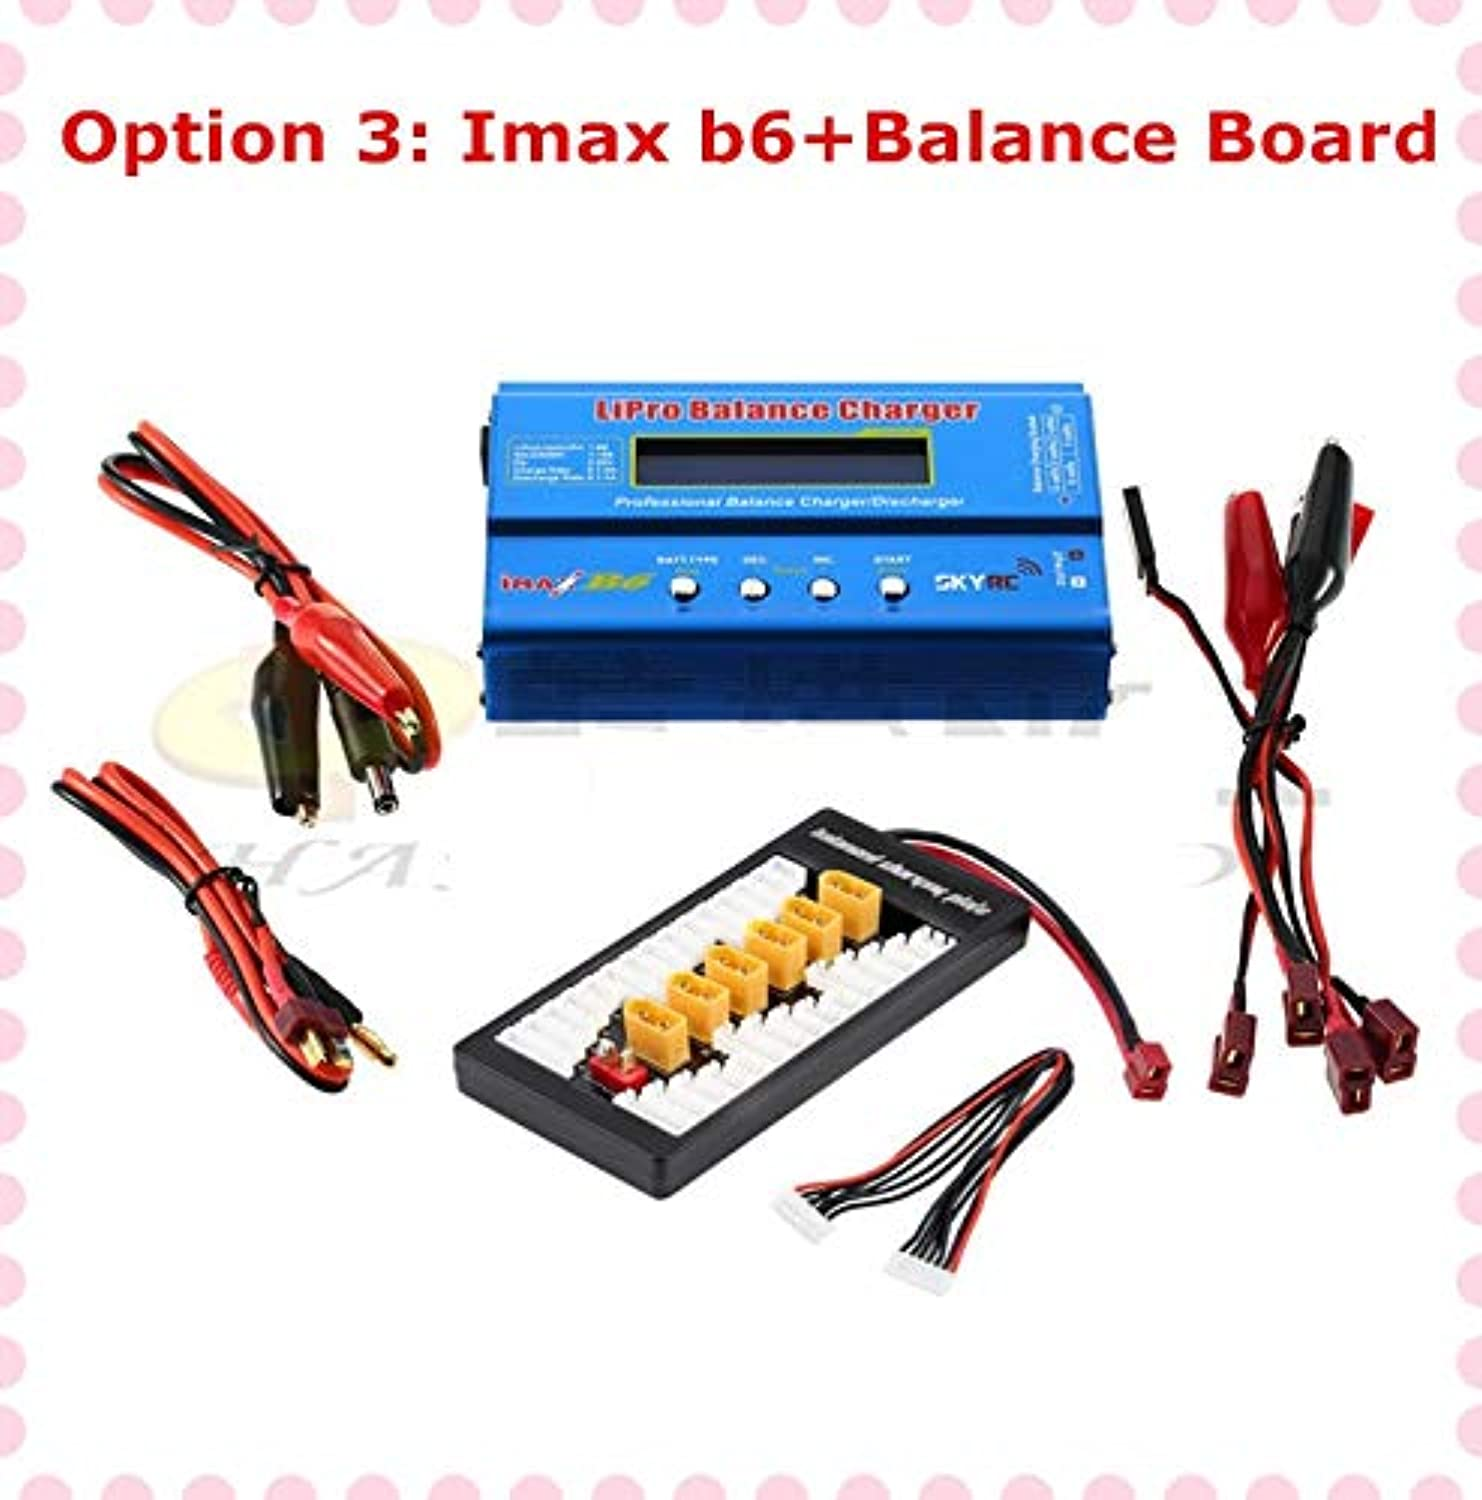 Original Build Power 3 in 1 Battery Balancer RC 2s-6s Lipo Li-Fe LCD + Voltage Meter Tester + Discharger   10 Pieces